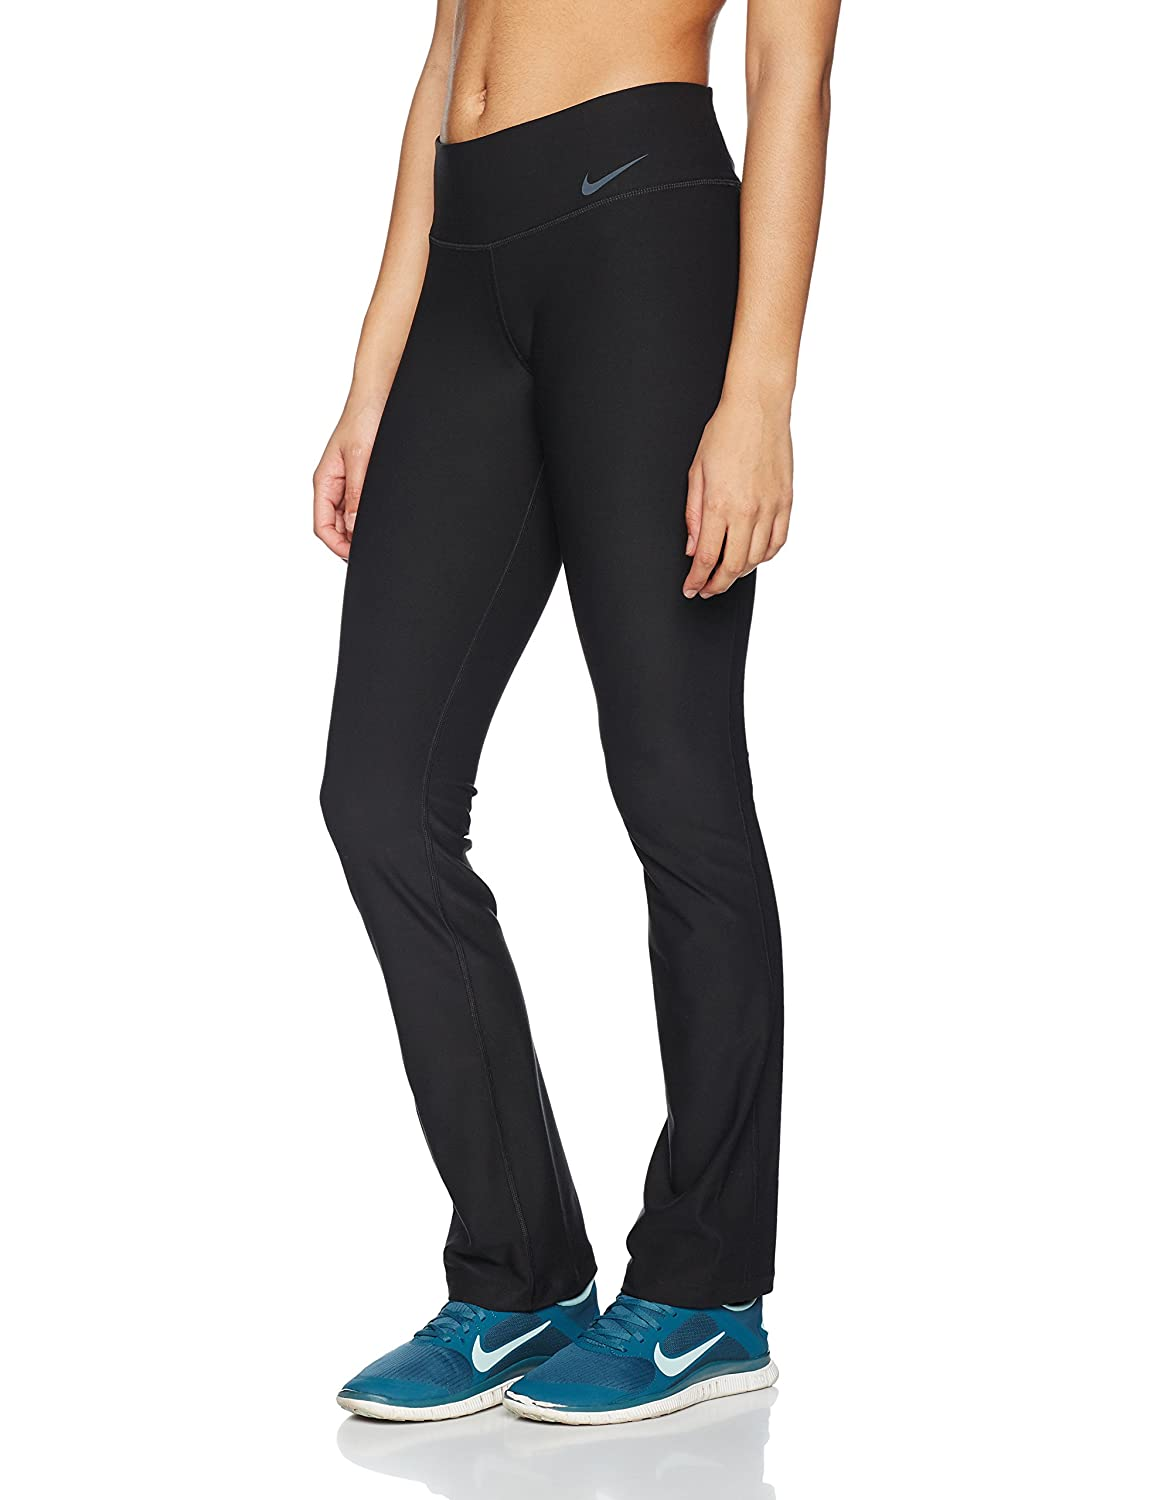 great deals many styles outlet store sale Nike Legend 2.0 Slim Poly Pants Women's Long Sports Trousers ...